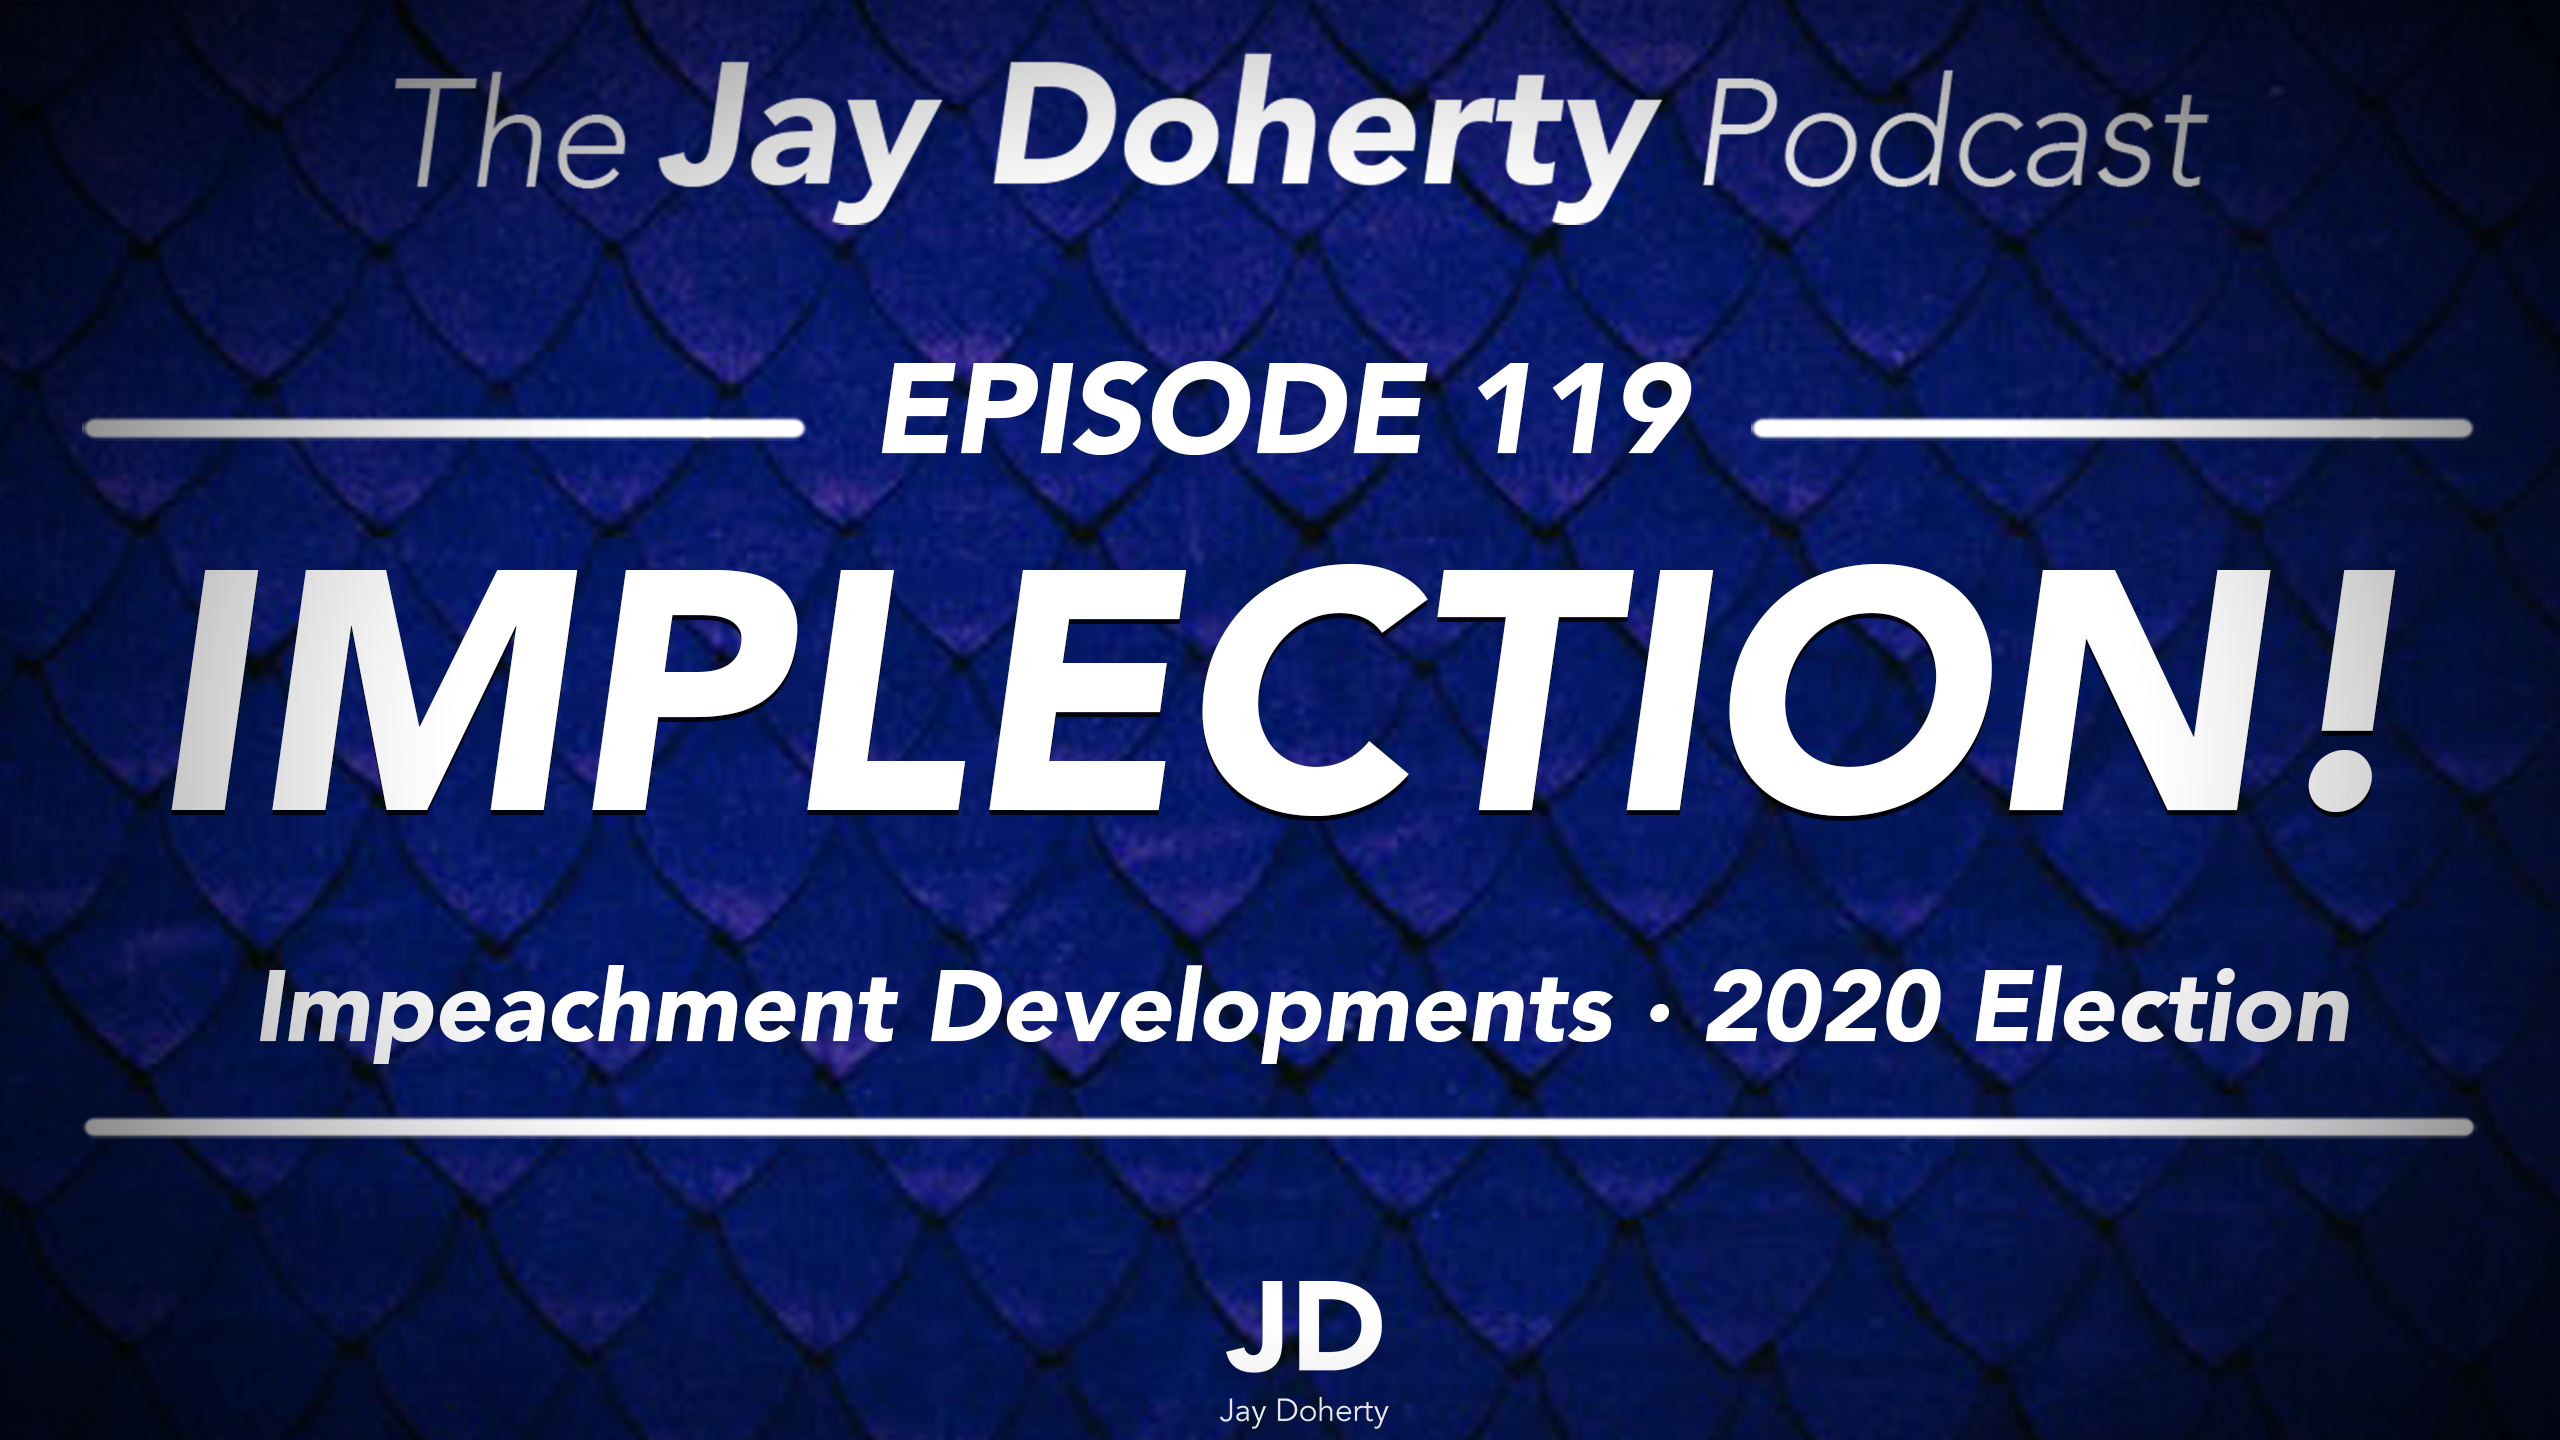 119 – IMPLECTION! | Impeachment Developments and 2020 Election